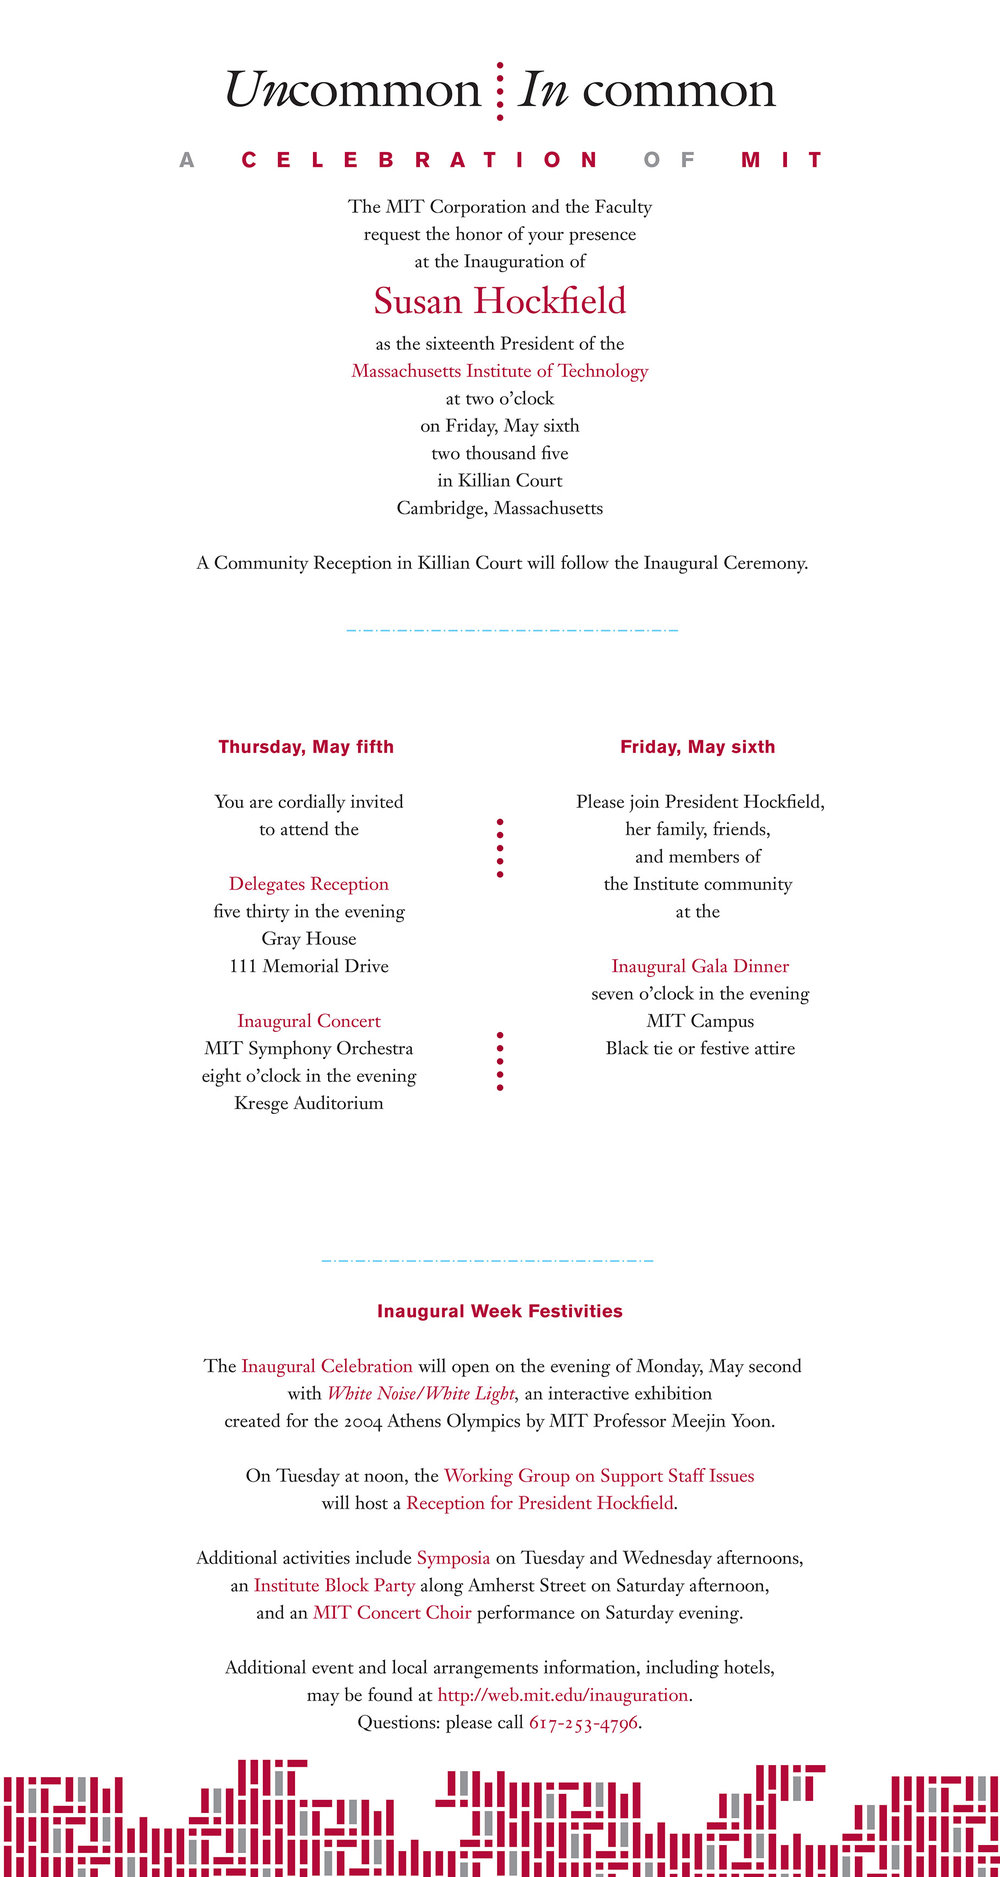 Invitation interior for MIT President Hockfield's inauguration